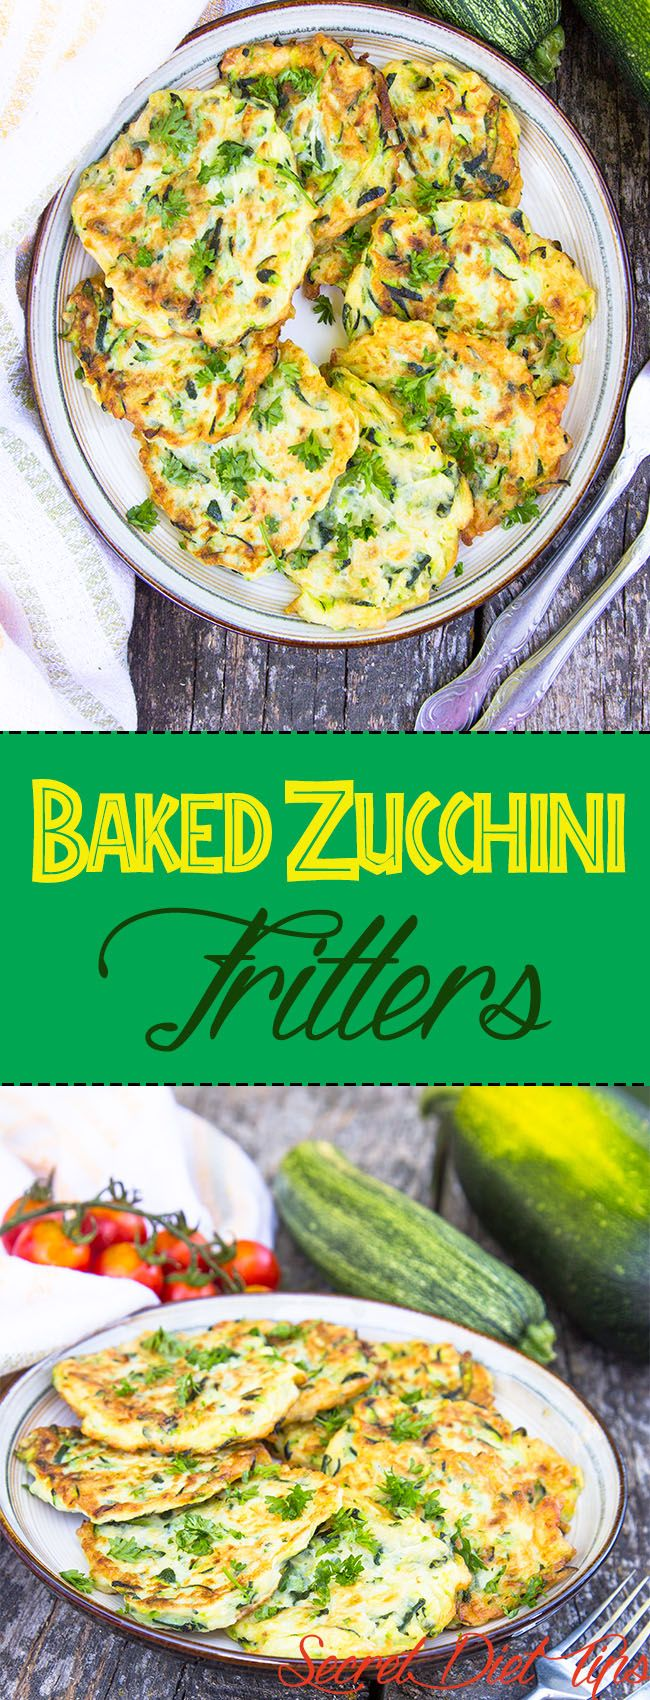 Baked zucchini fritters make a very sumptuous yet delicious meal when baked. The dish is a notch away from the normal mode of preparation, which is frying. Preparing this dish is nevertheless uncomplicated and you